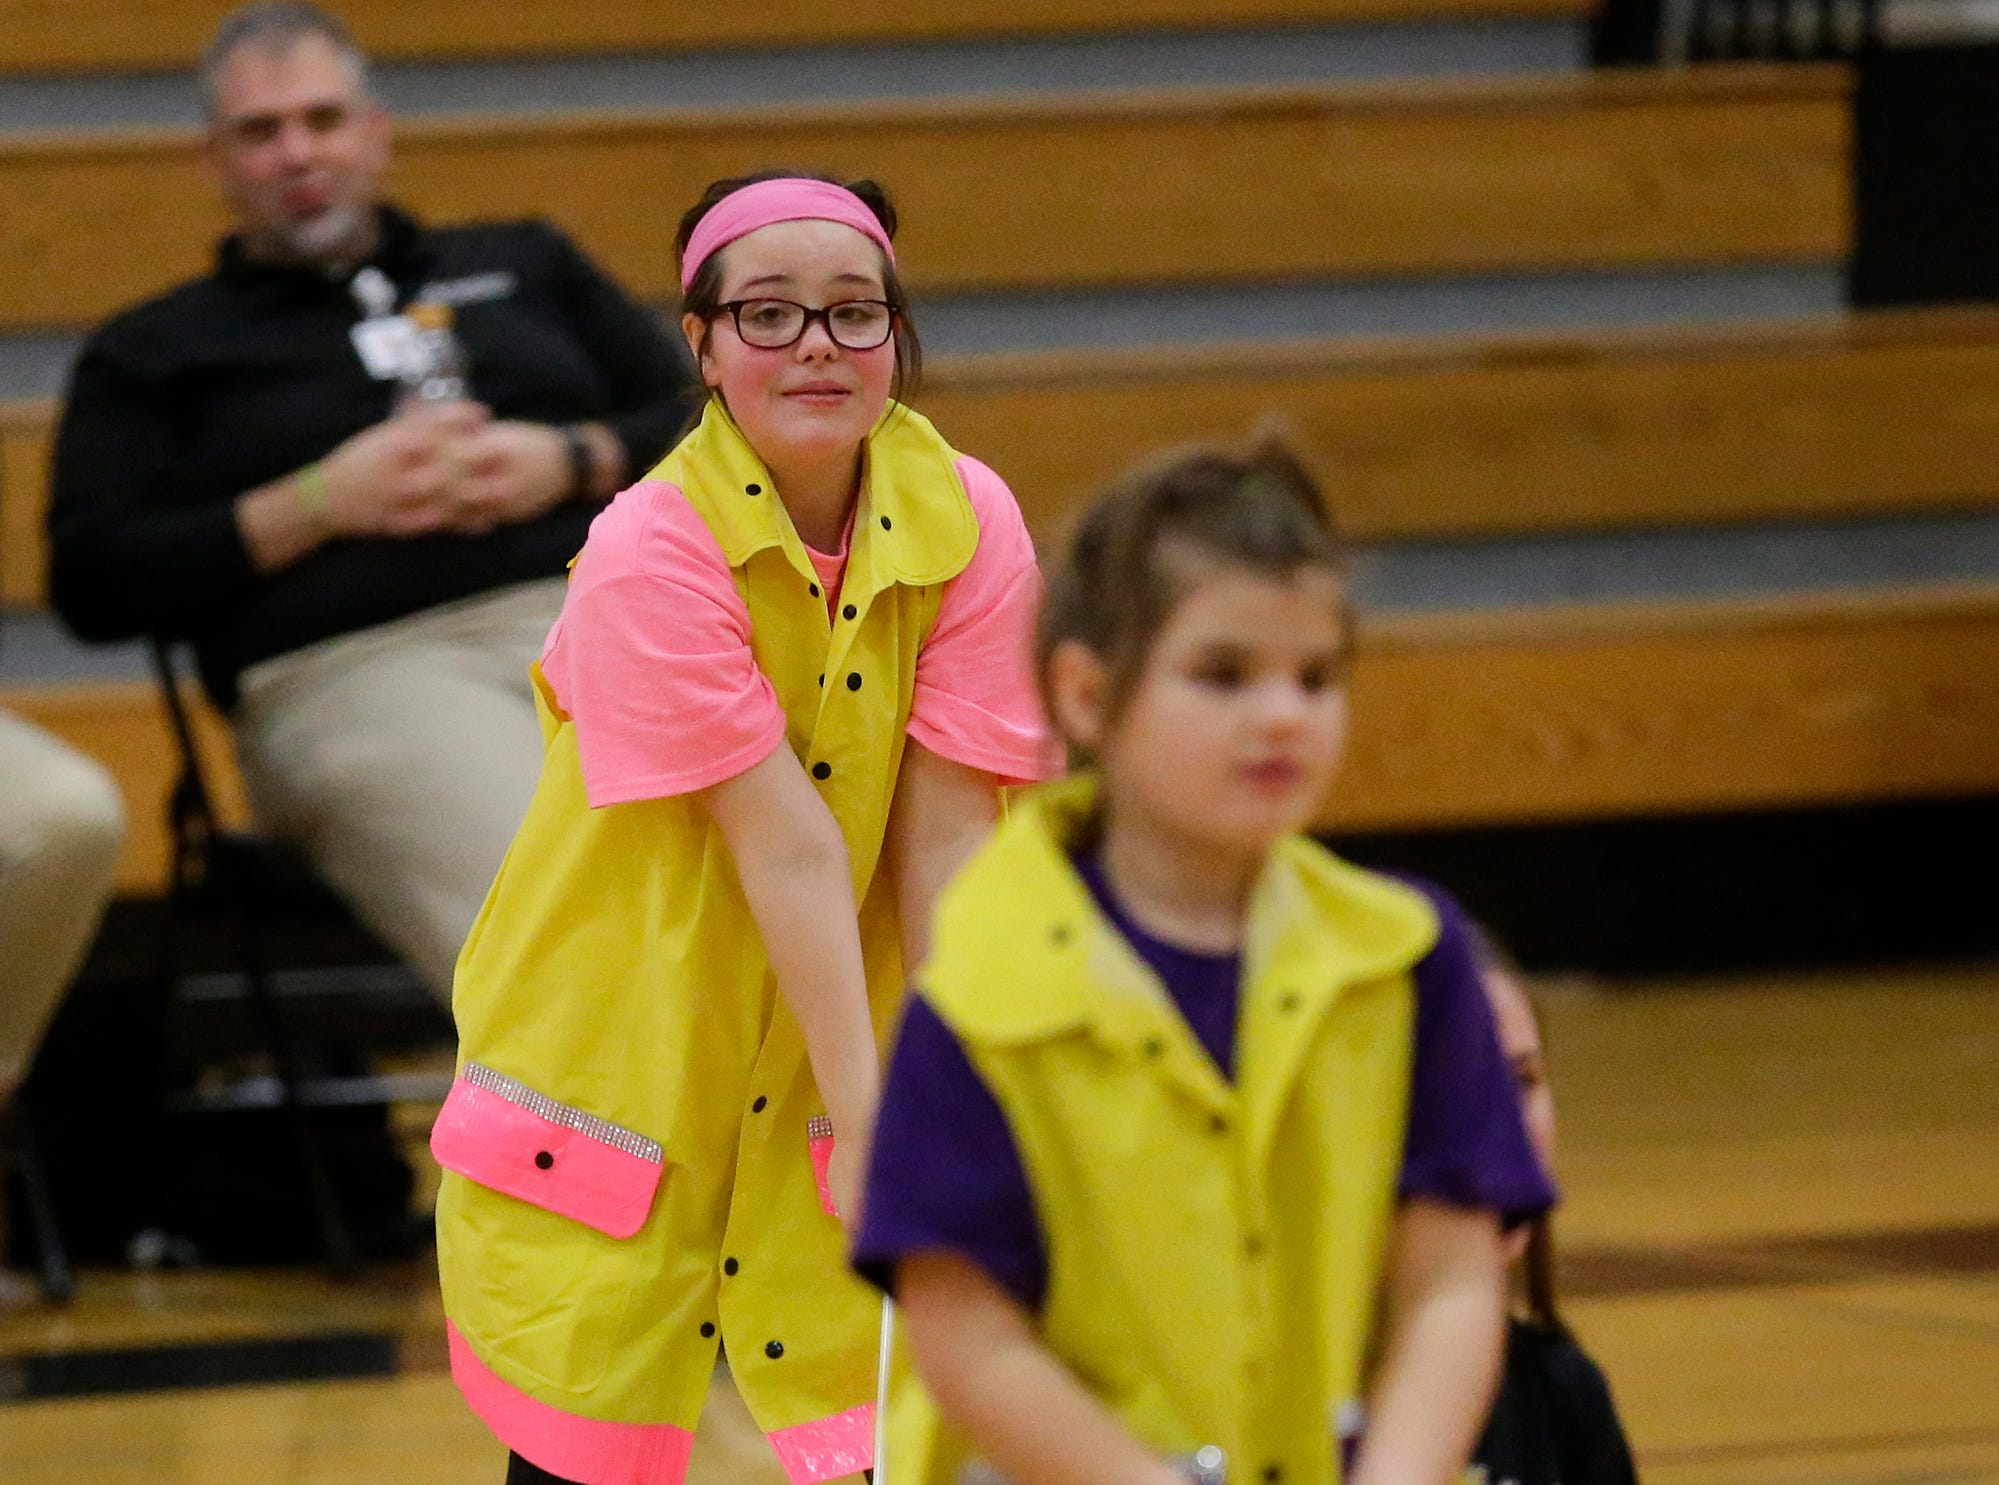 Olivia Gelllings (pink) performs with the Shining Stars Dance Team during halftime of the North Fond du Lac High School vs. St. Mary's Springs Academy girls basketball game Jan. 4 at North Fond du Lac High School.